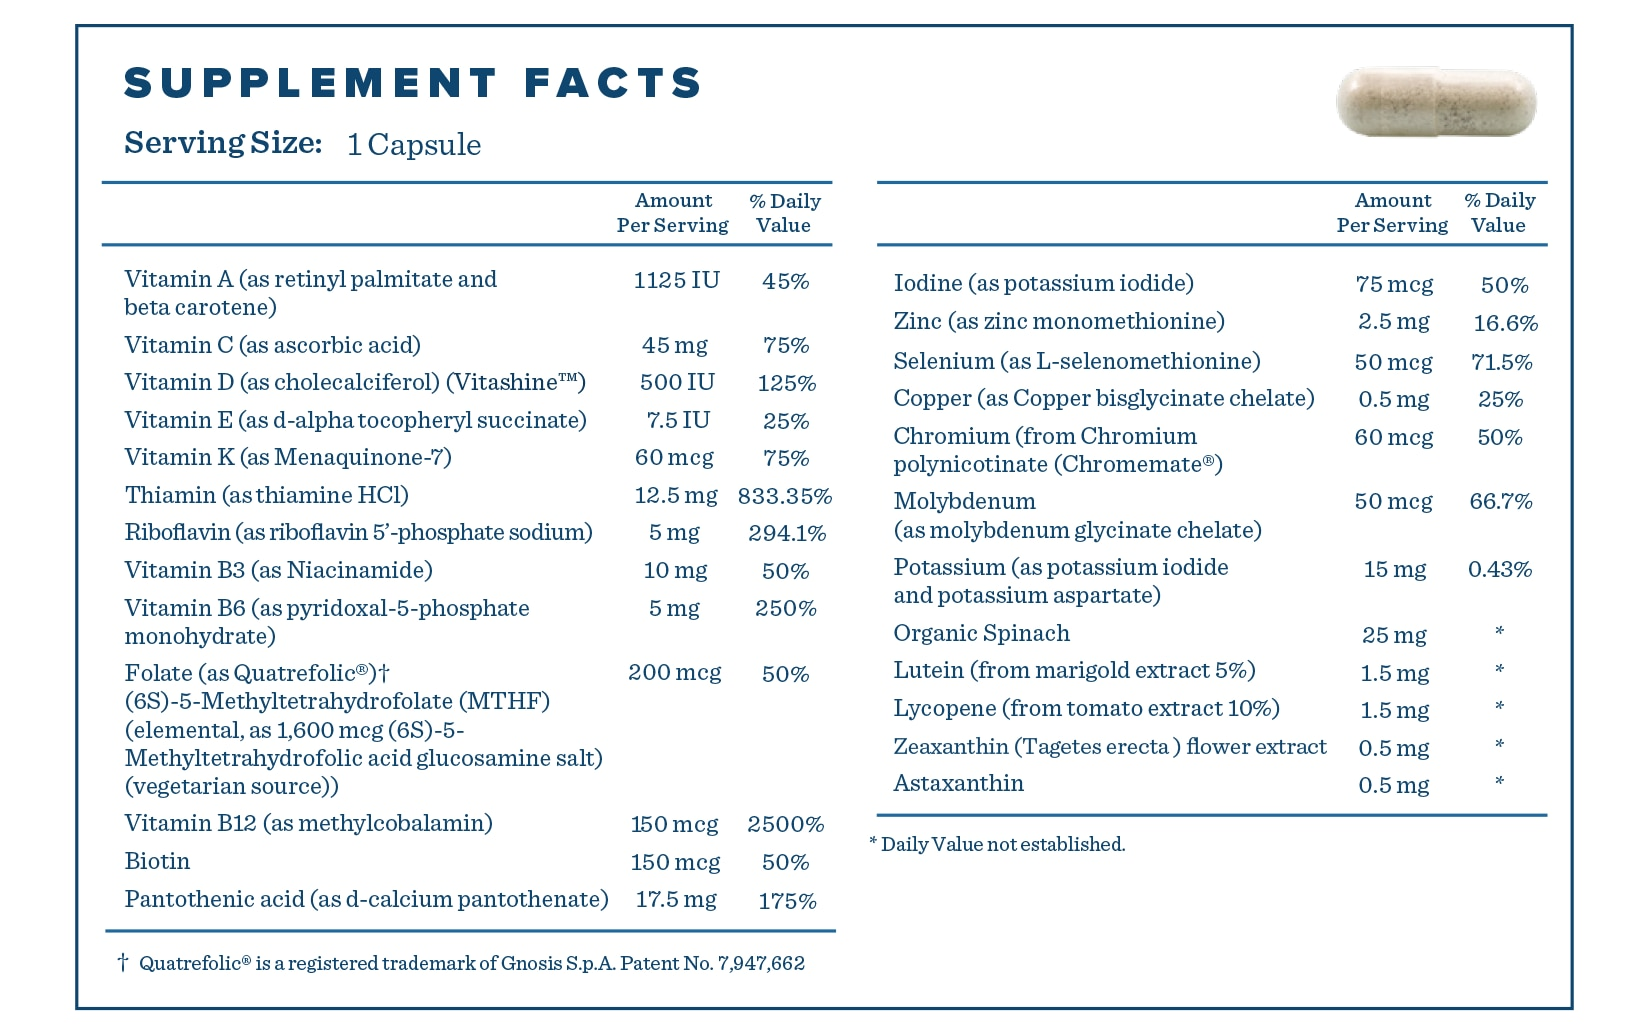 Supplement Facts for Foundational Multi